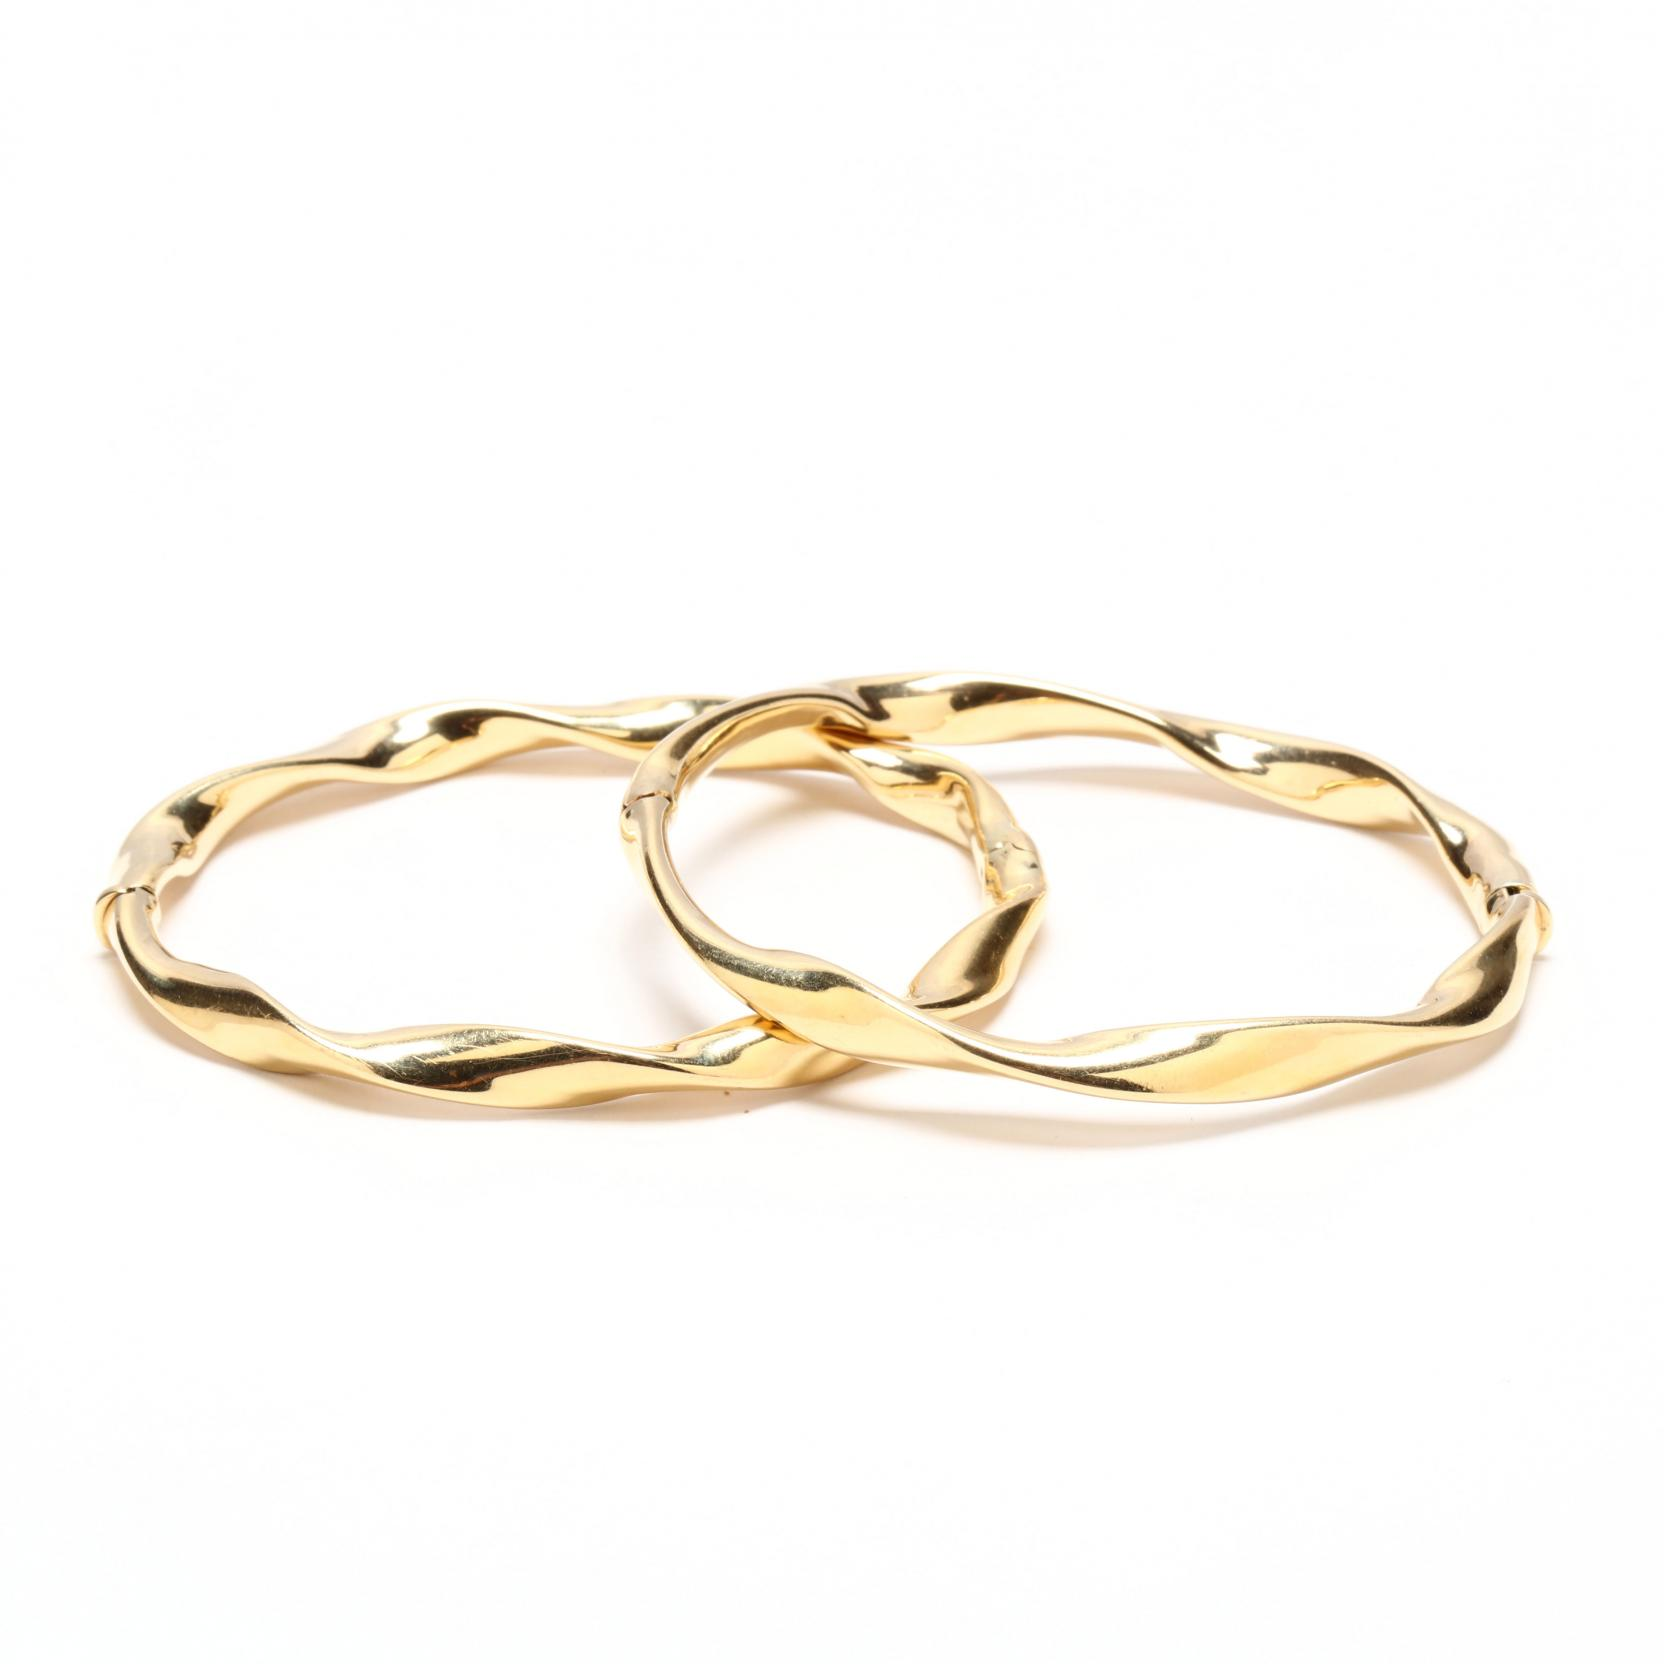 pair-of-14kt-gold-bangle-bracelets-italy